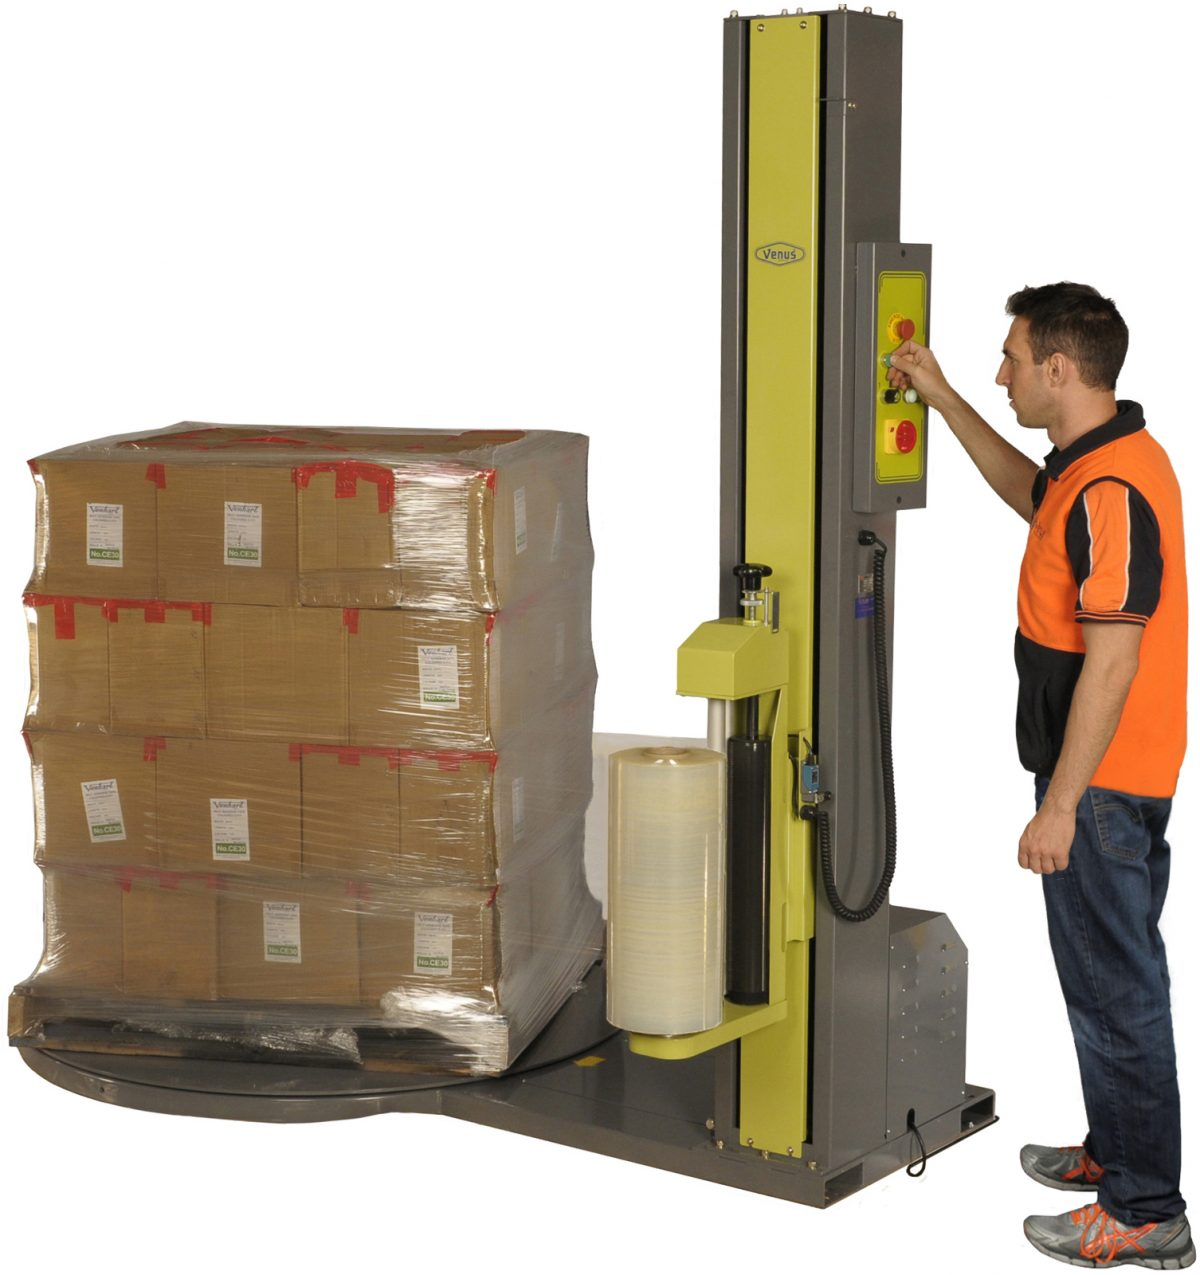 How A Pallet Wrapper Can Decrease Potential Health & Safety Issues